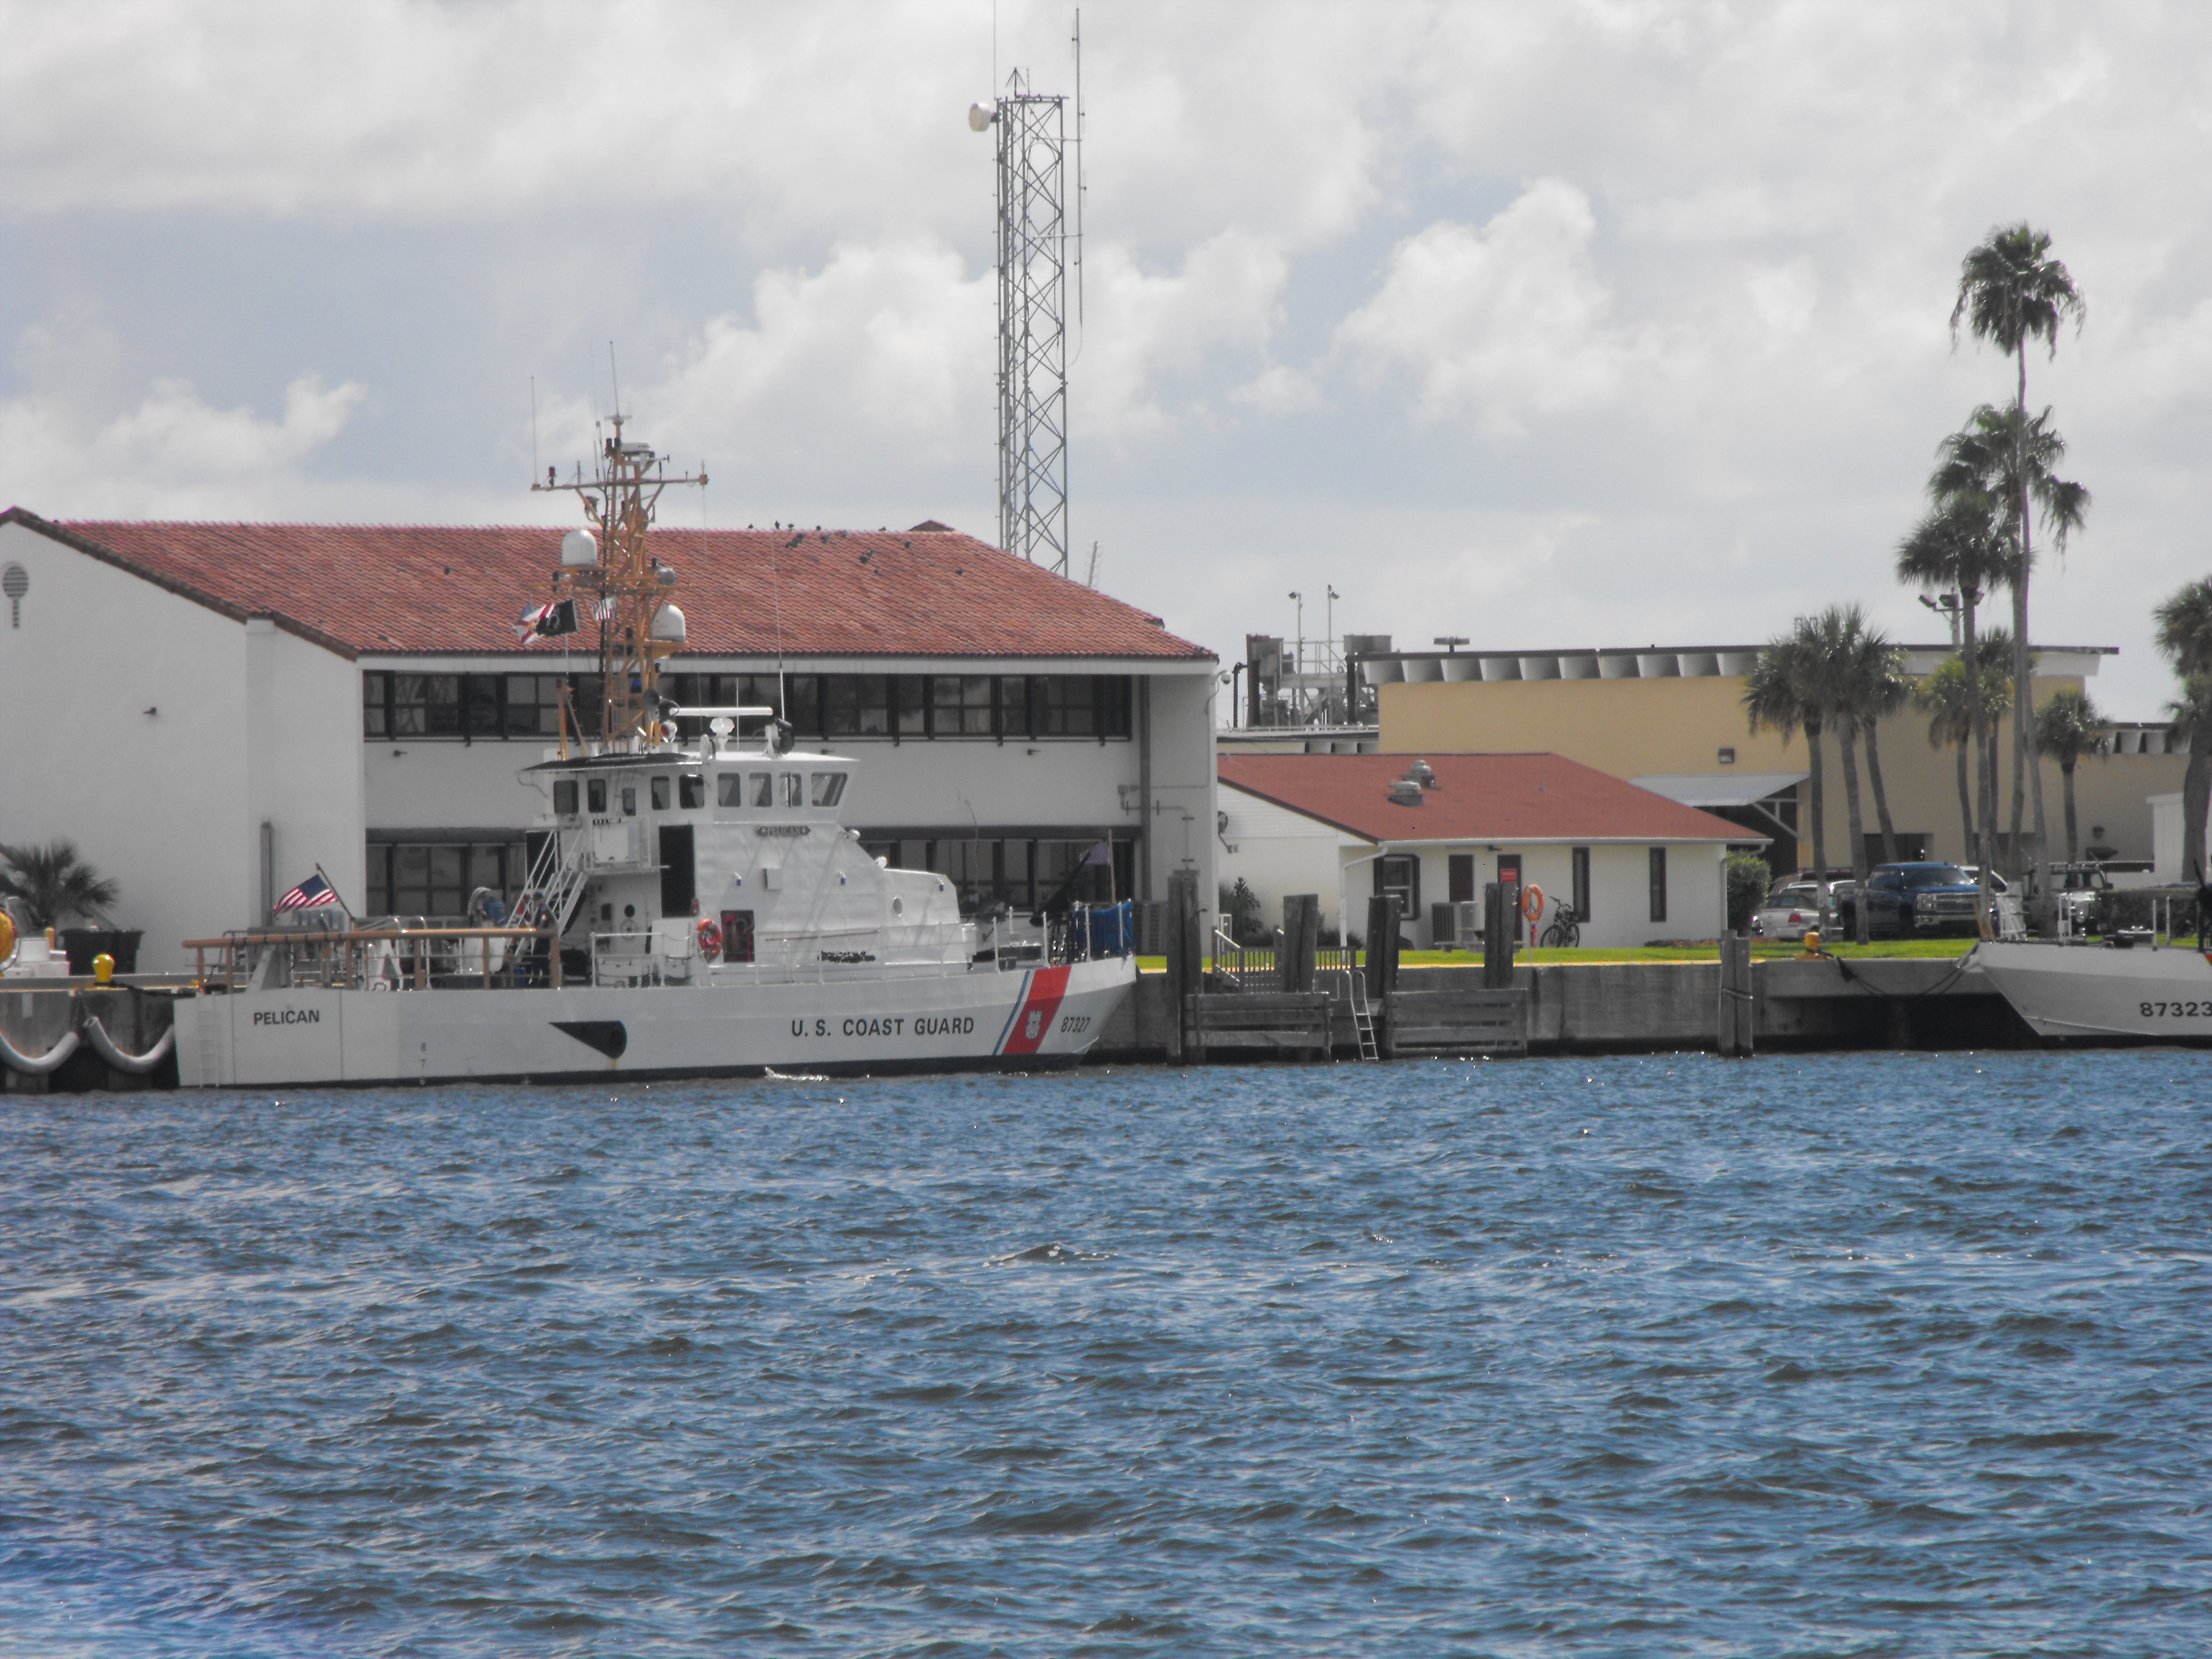 View of the Coast Guard base from the bay